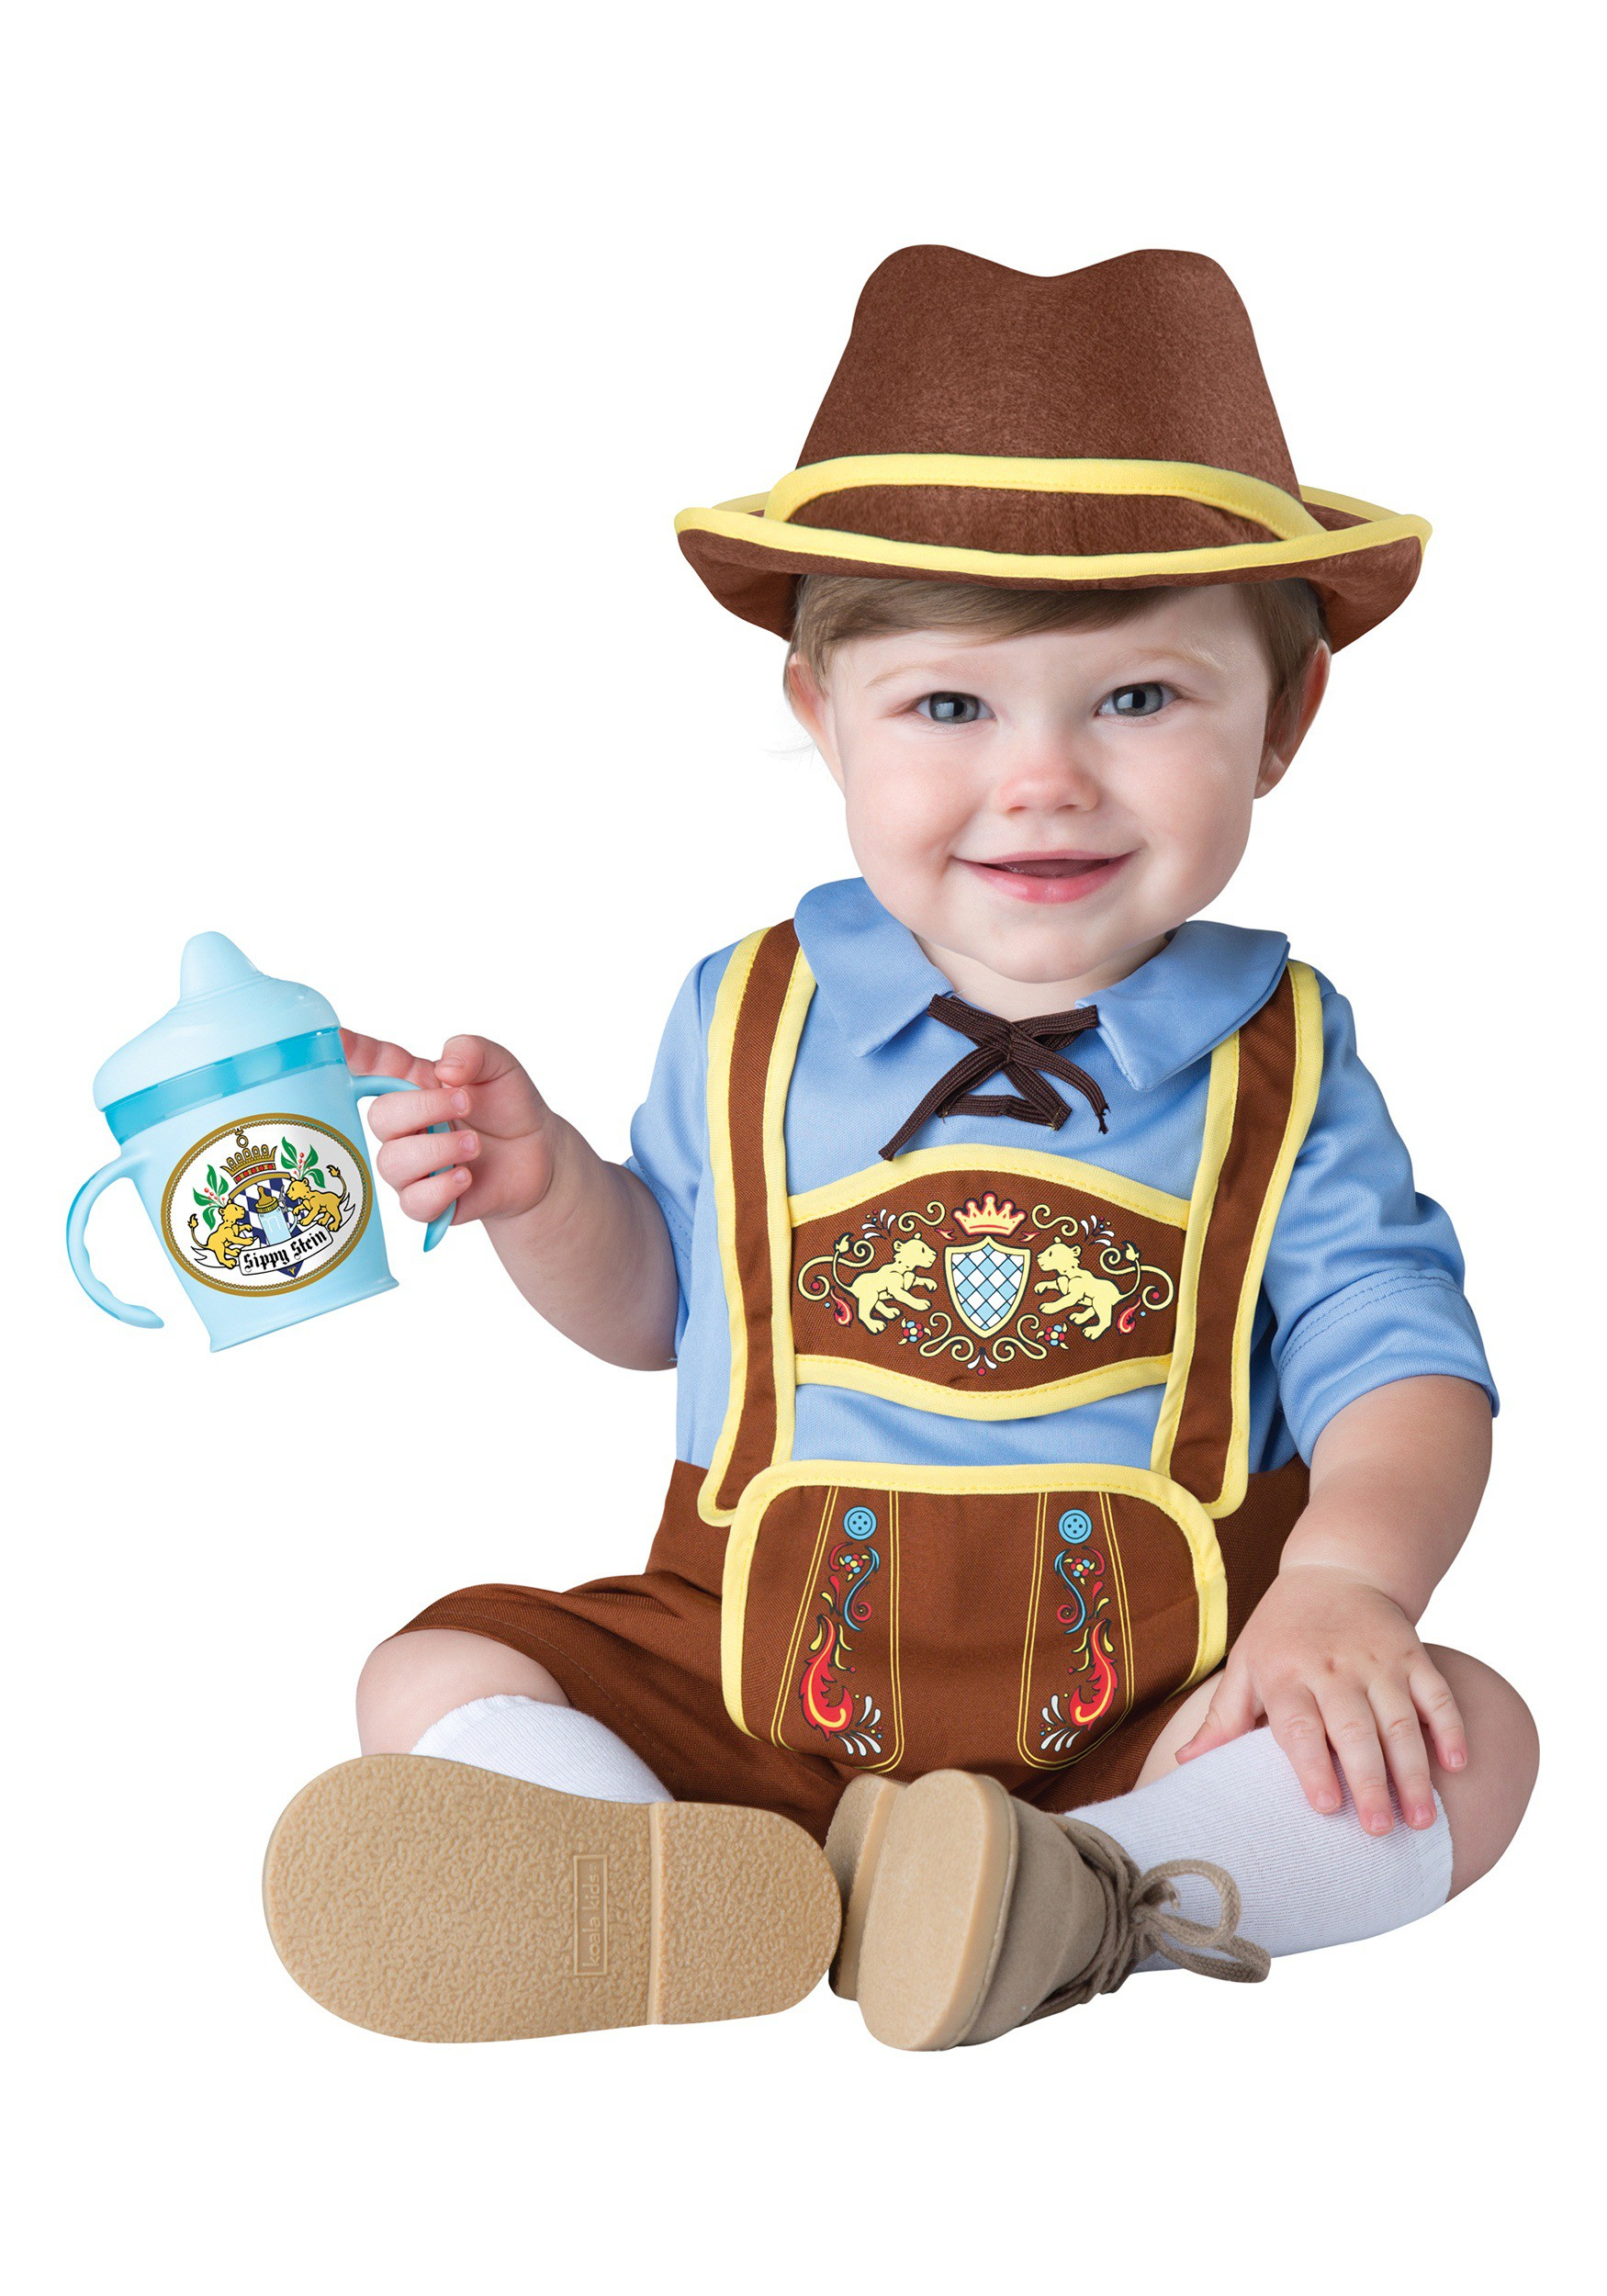 Toddler Halloween Costumes - HalloweenCostumes.com